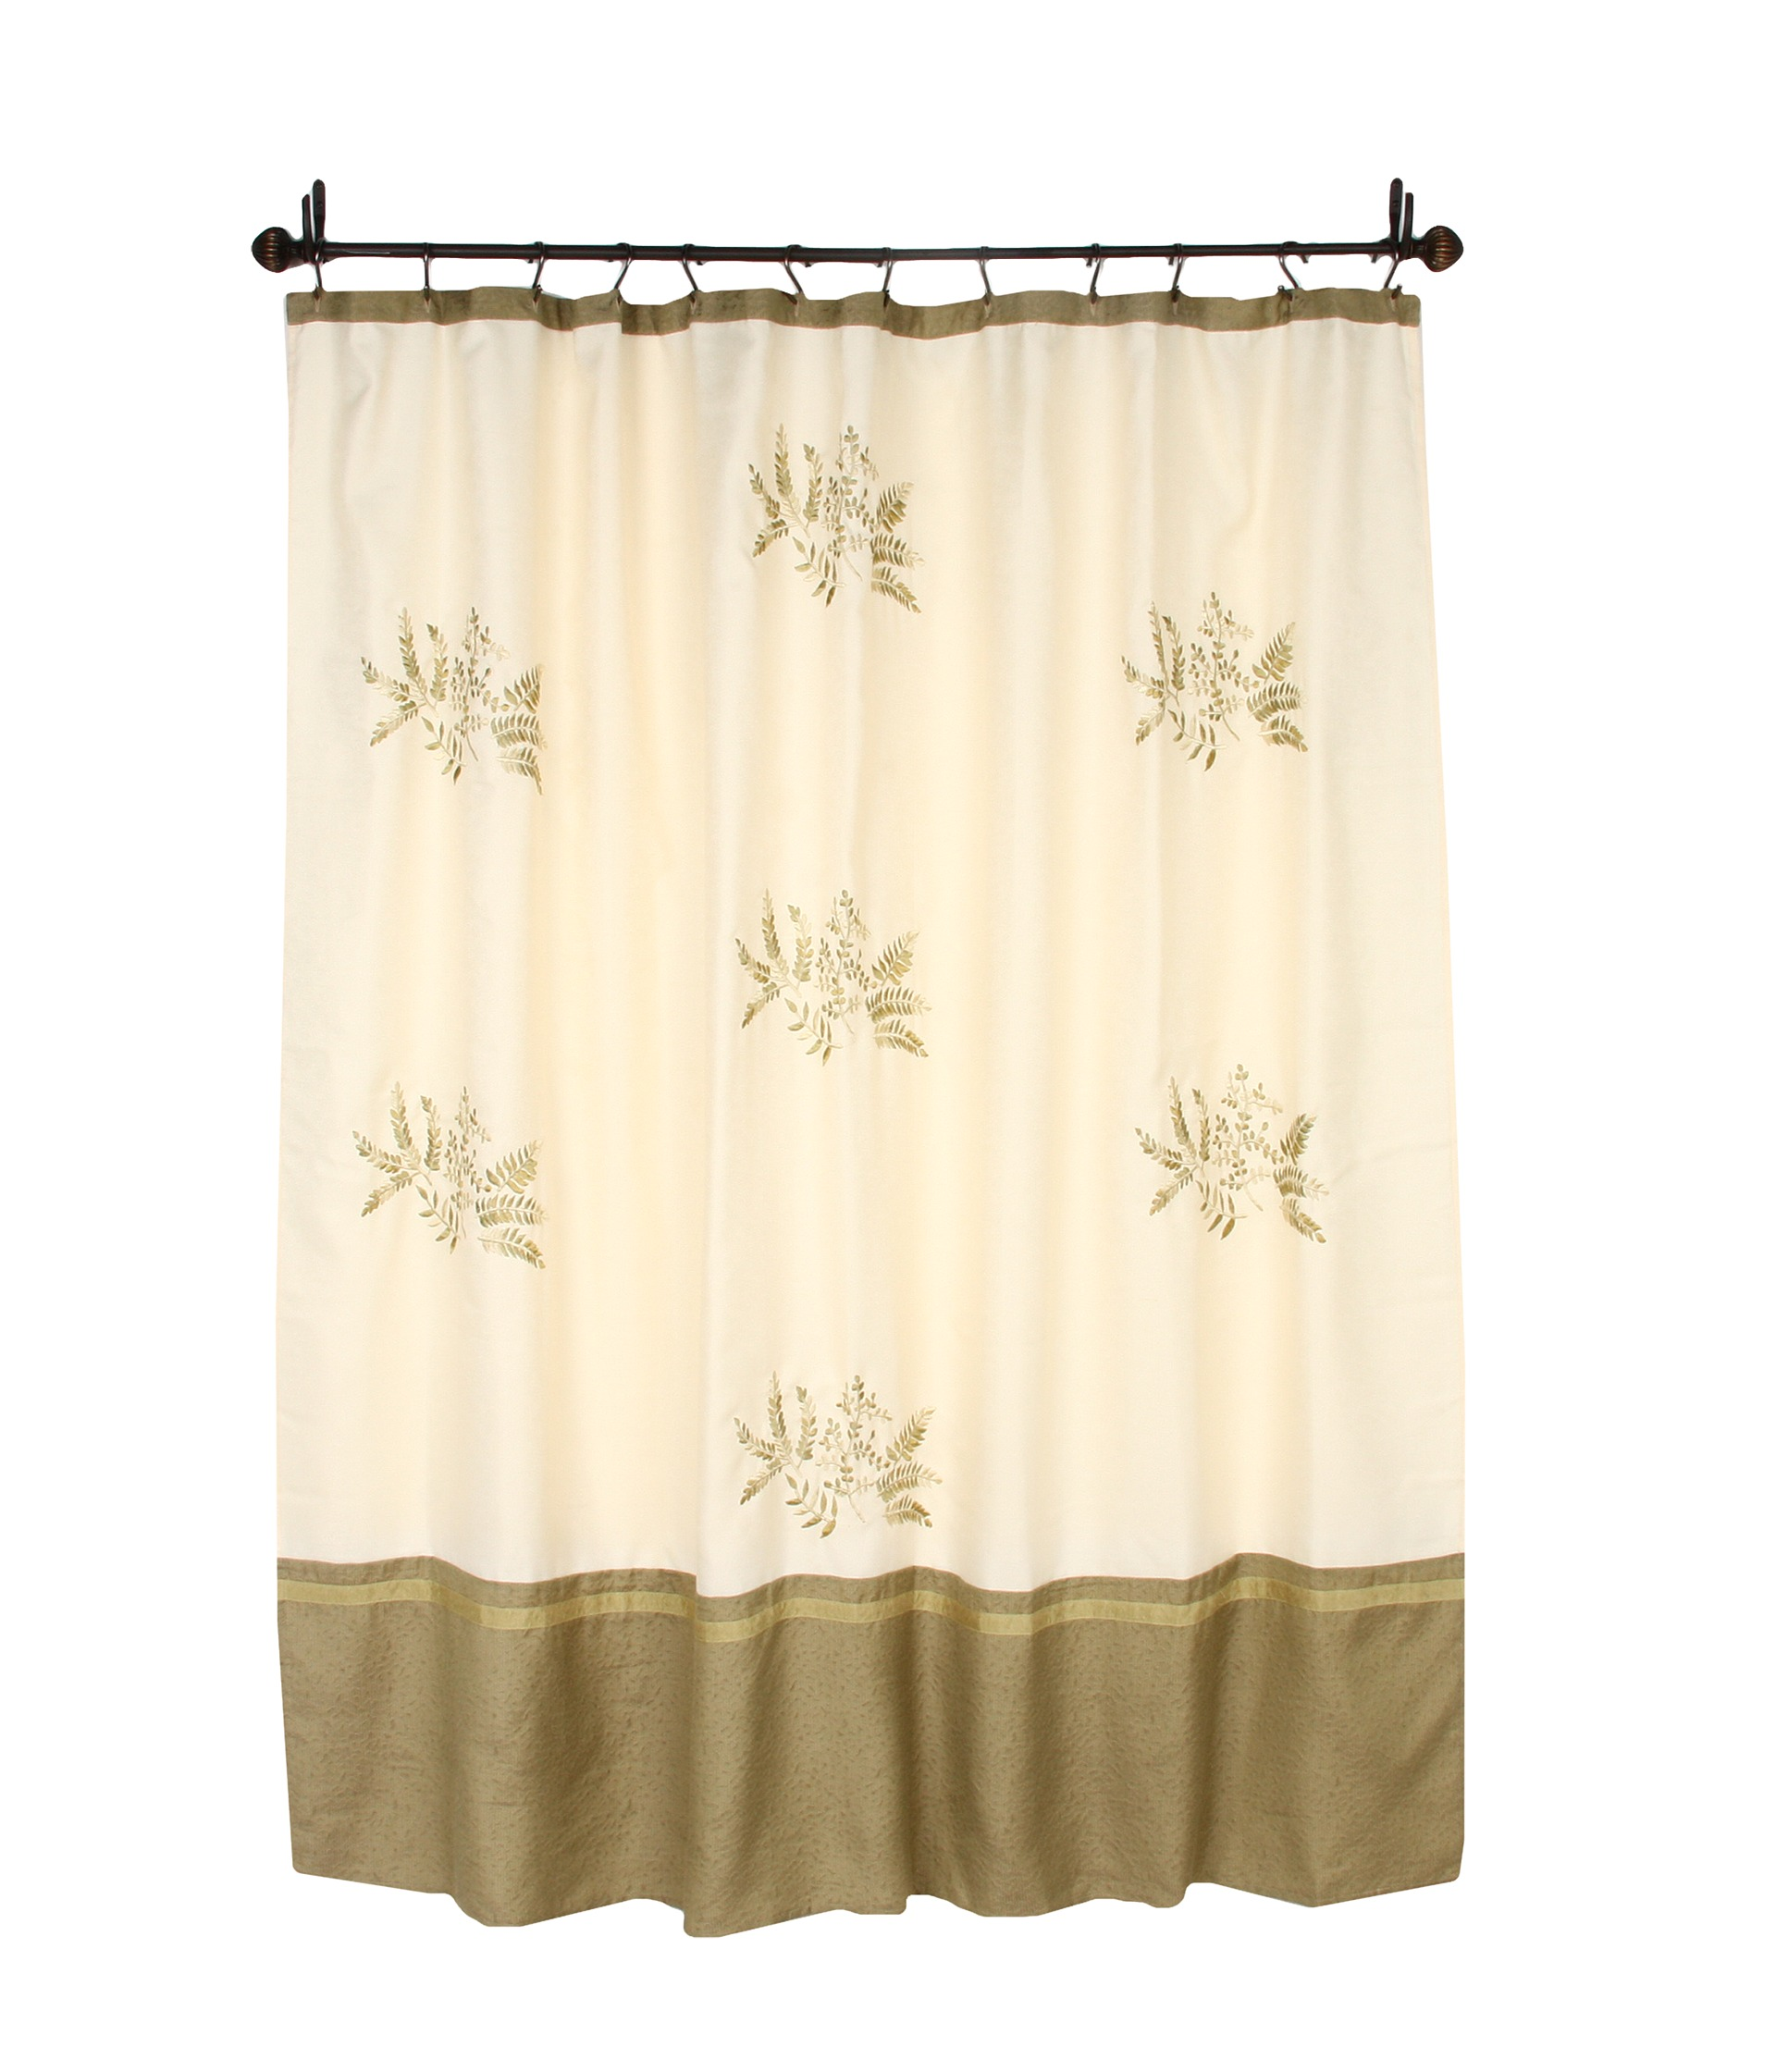 1920x2240px 8 Hottest Avanti Shower Curtains Picture in Others